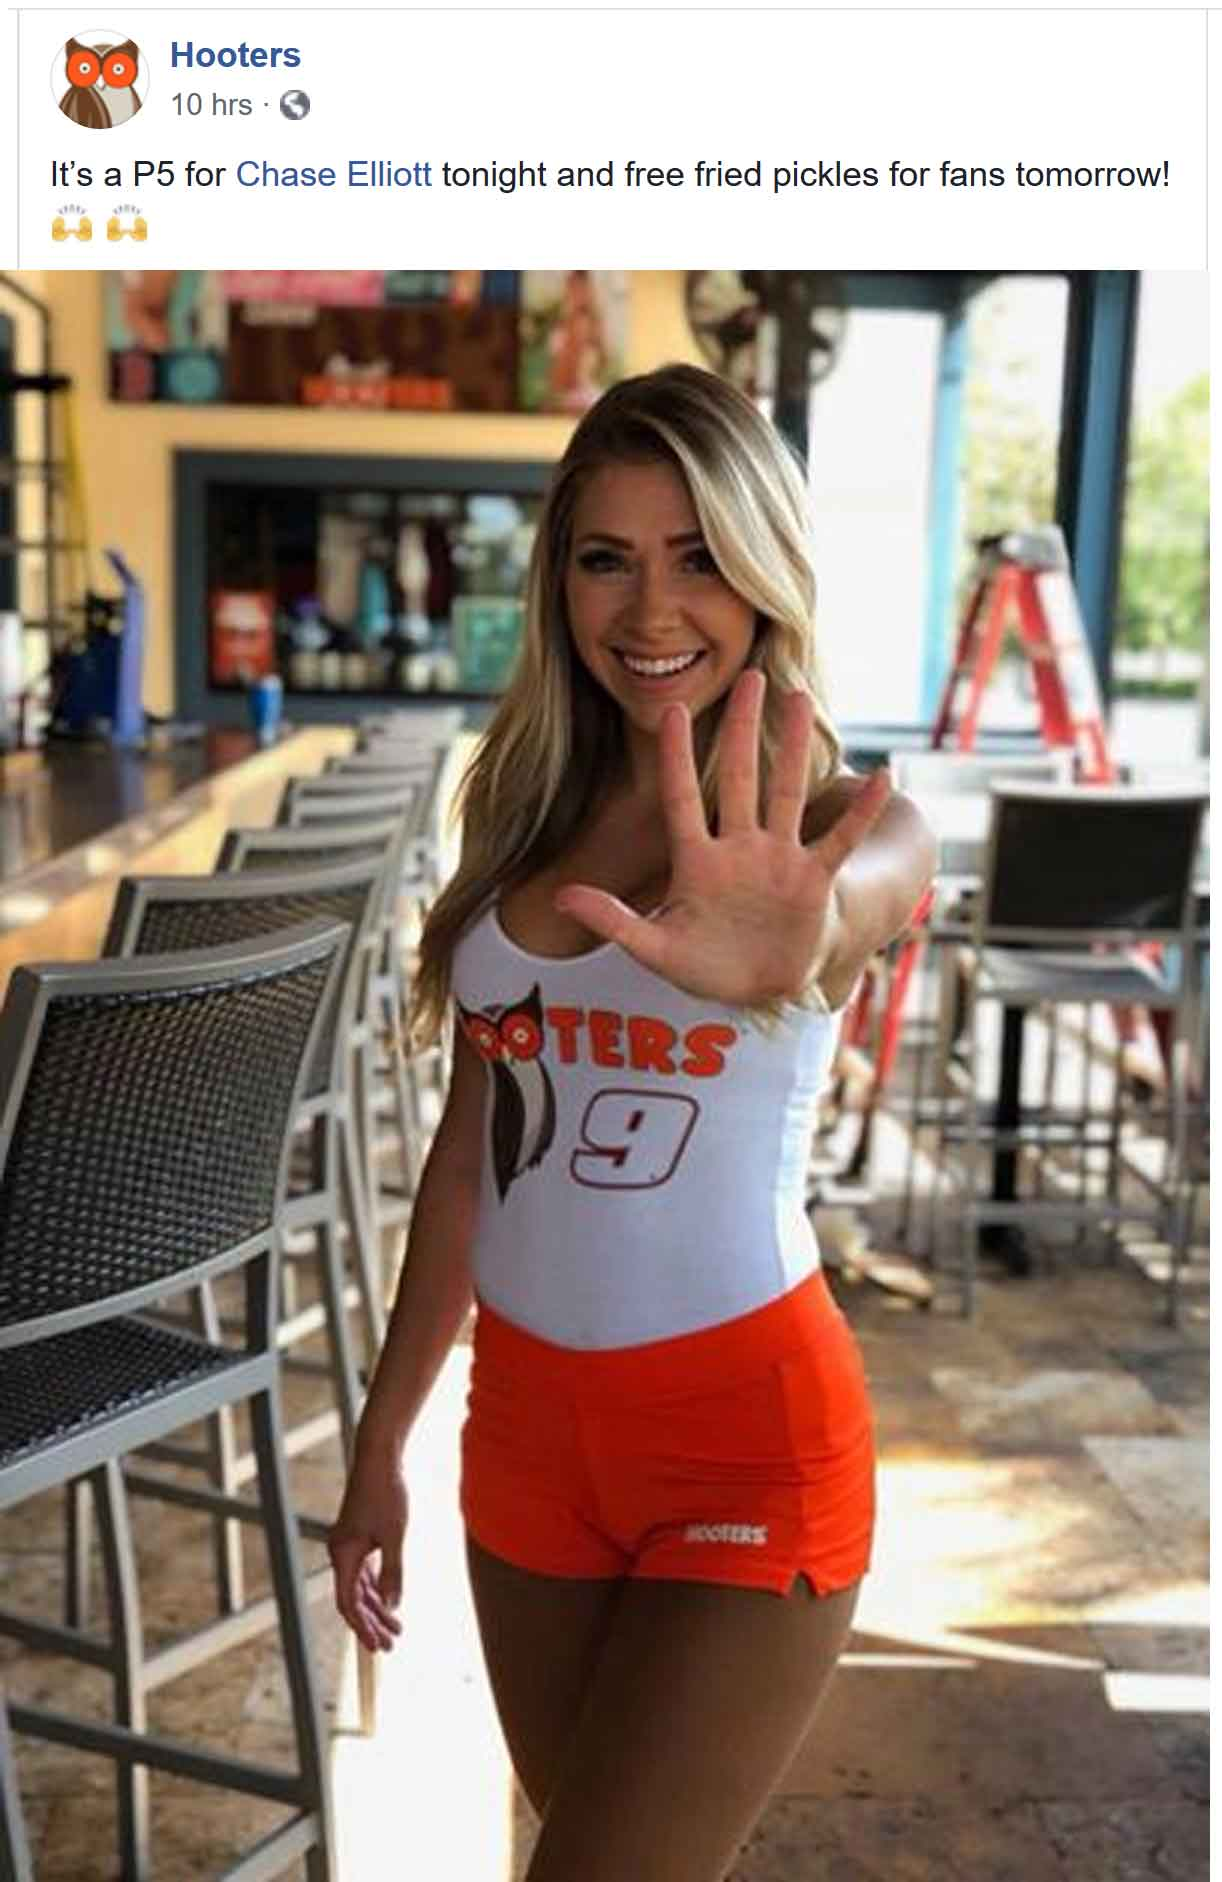 Hooters Coupon July 2019 Free fried pickles today at Hooters restaurants